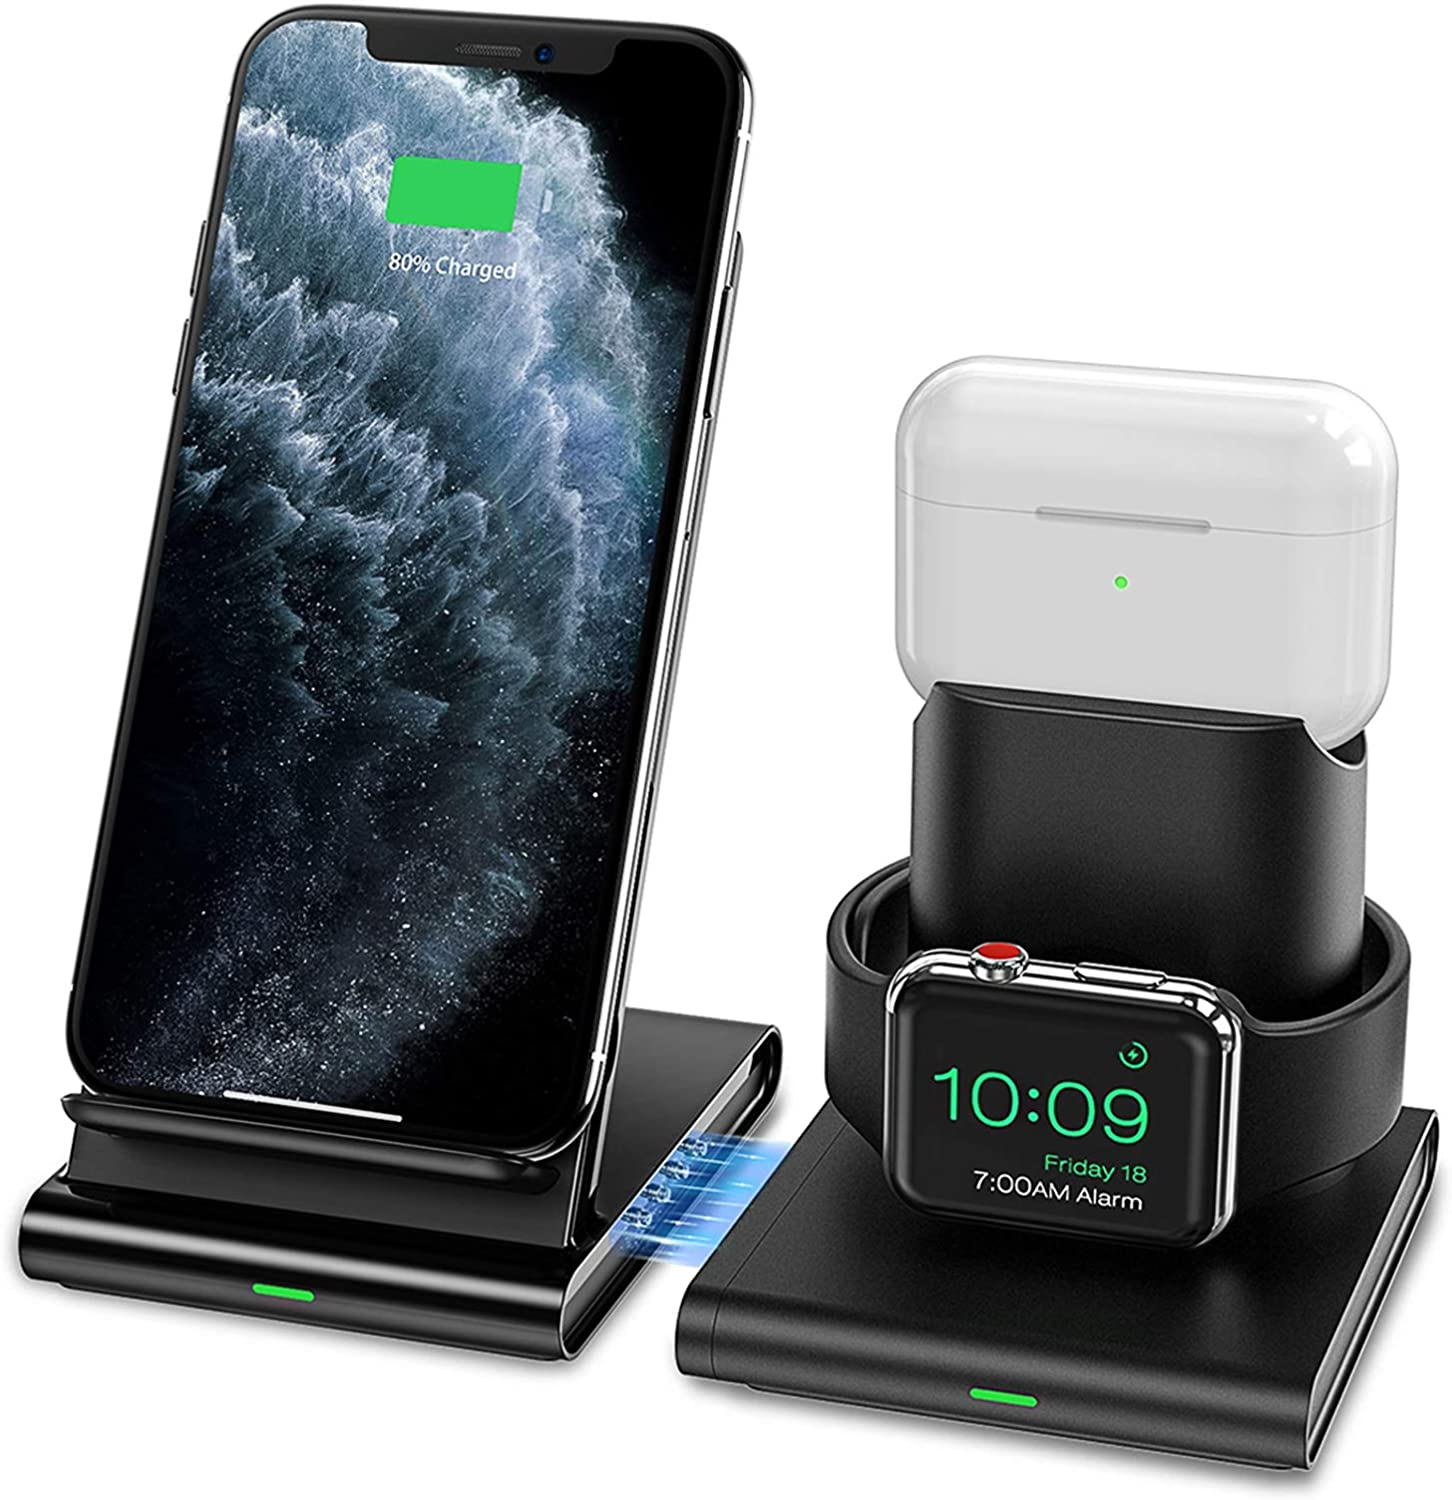 Seneo Wireless Charger, 3 in 1 Wireless Charging Station for Apple Watch, AirPods Pro/2, Detachable and Magnetic Wireless Charging Stand for iPhone 11 Pro Max/X/XS/XR/8Plus(NO QC 3.0 Adapter)